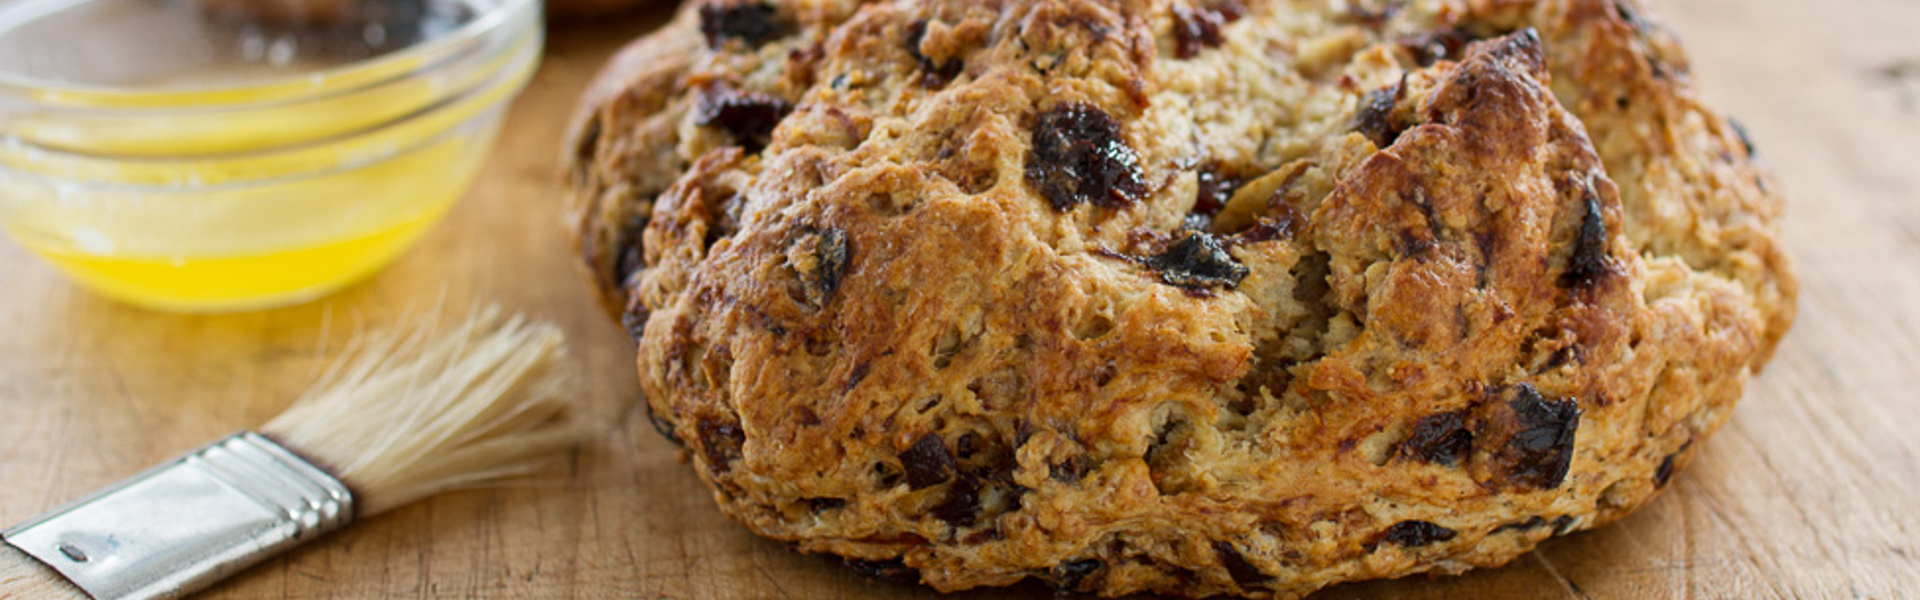 <p>Diced Prunes soaked in tea add new flavor dimensions to classic Irish-American soda bread–the tannins in the tea draw out the sweetness in the prunes.</p>